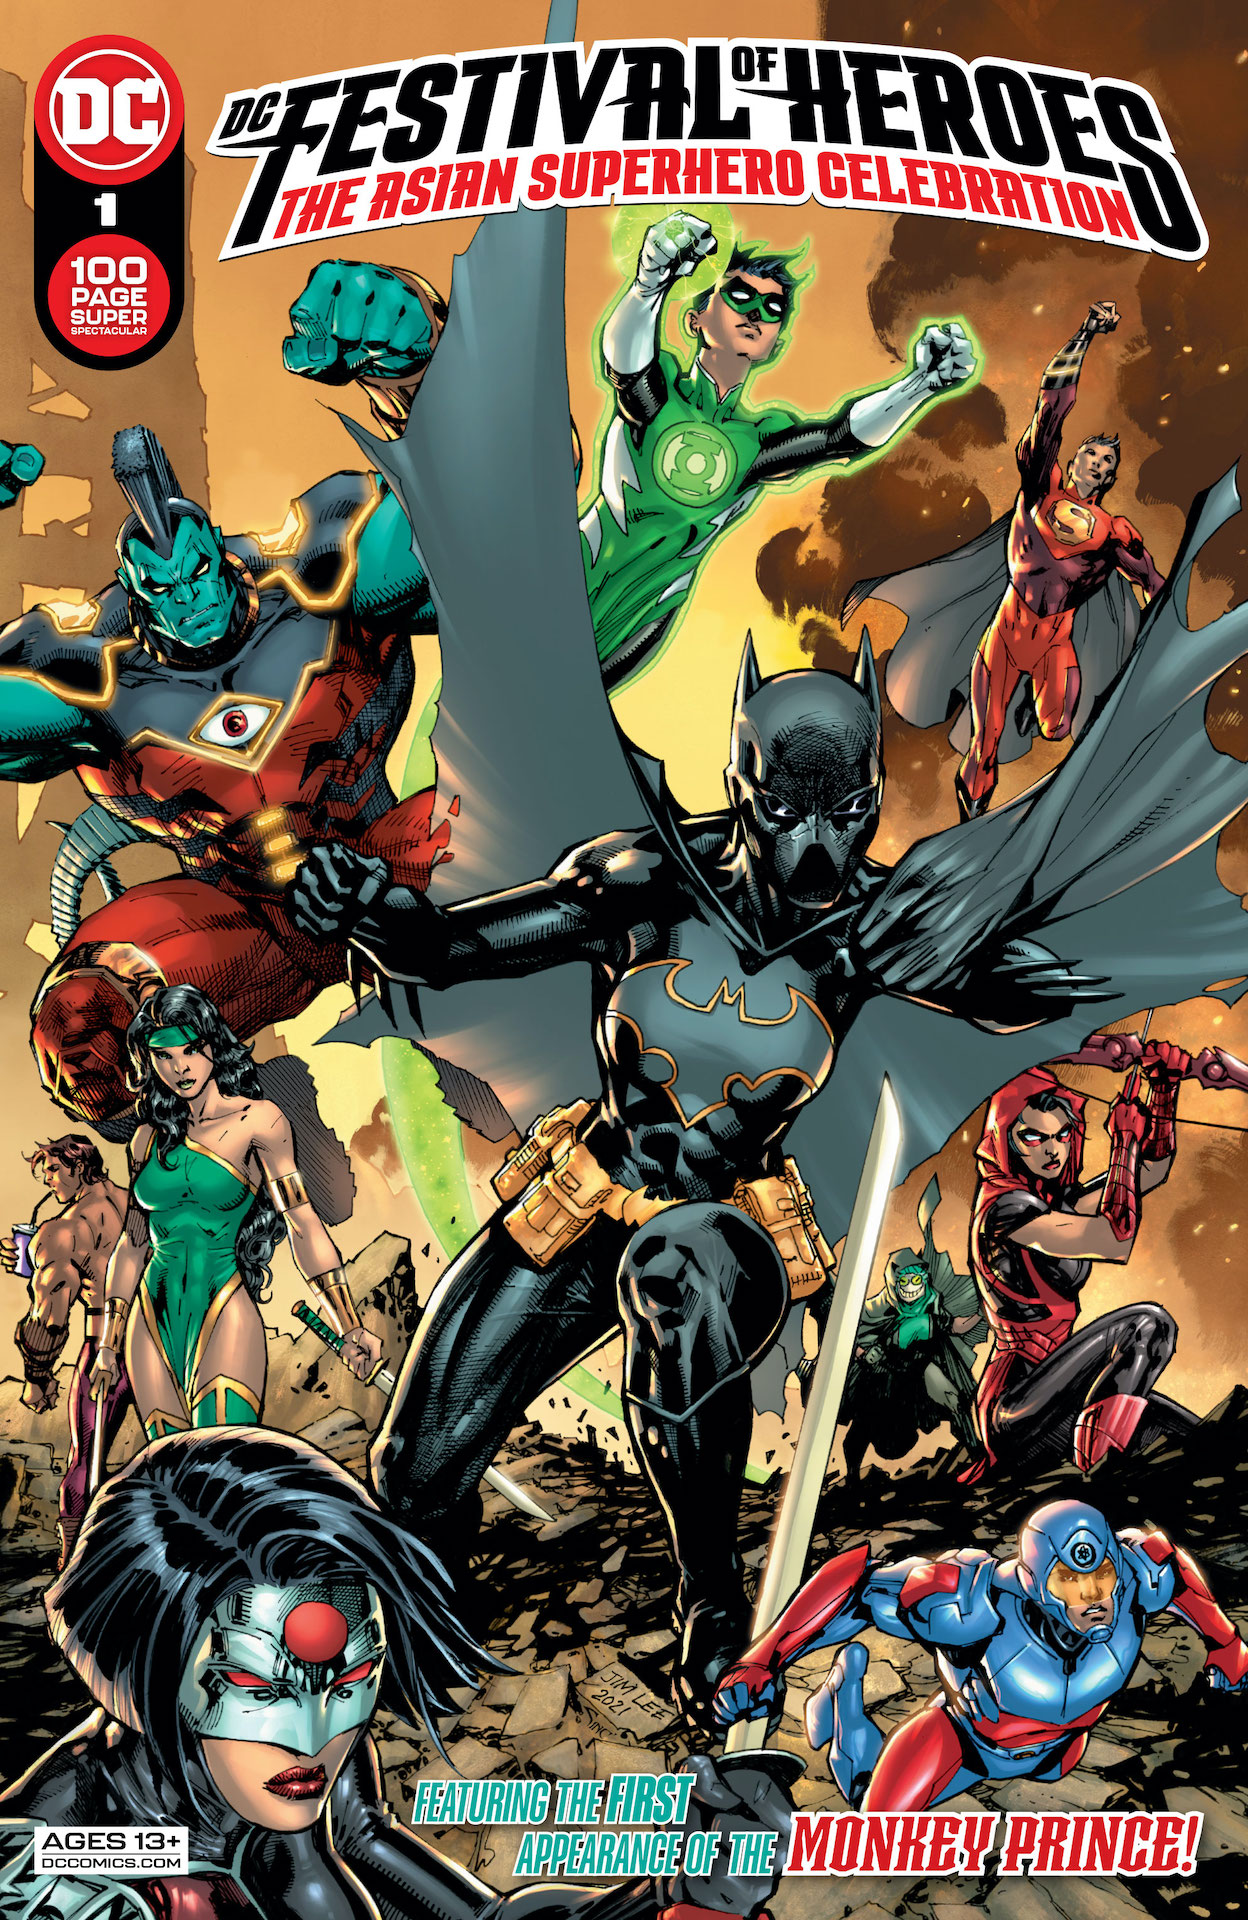 DC Preview: DC Festival of Heroes #1: The Asian Superhero Celebration